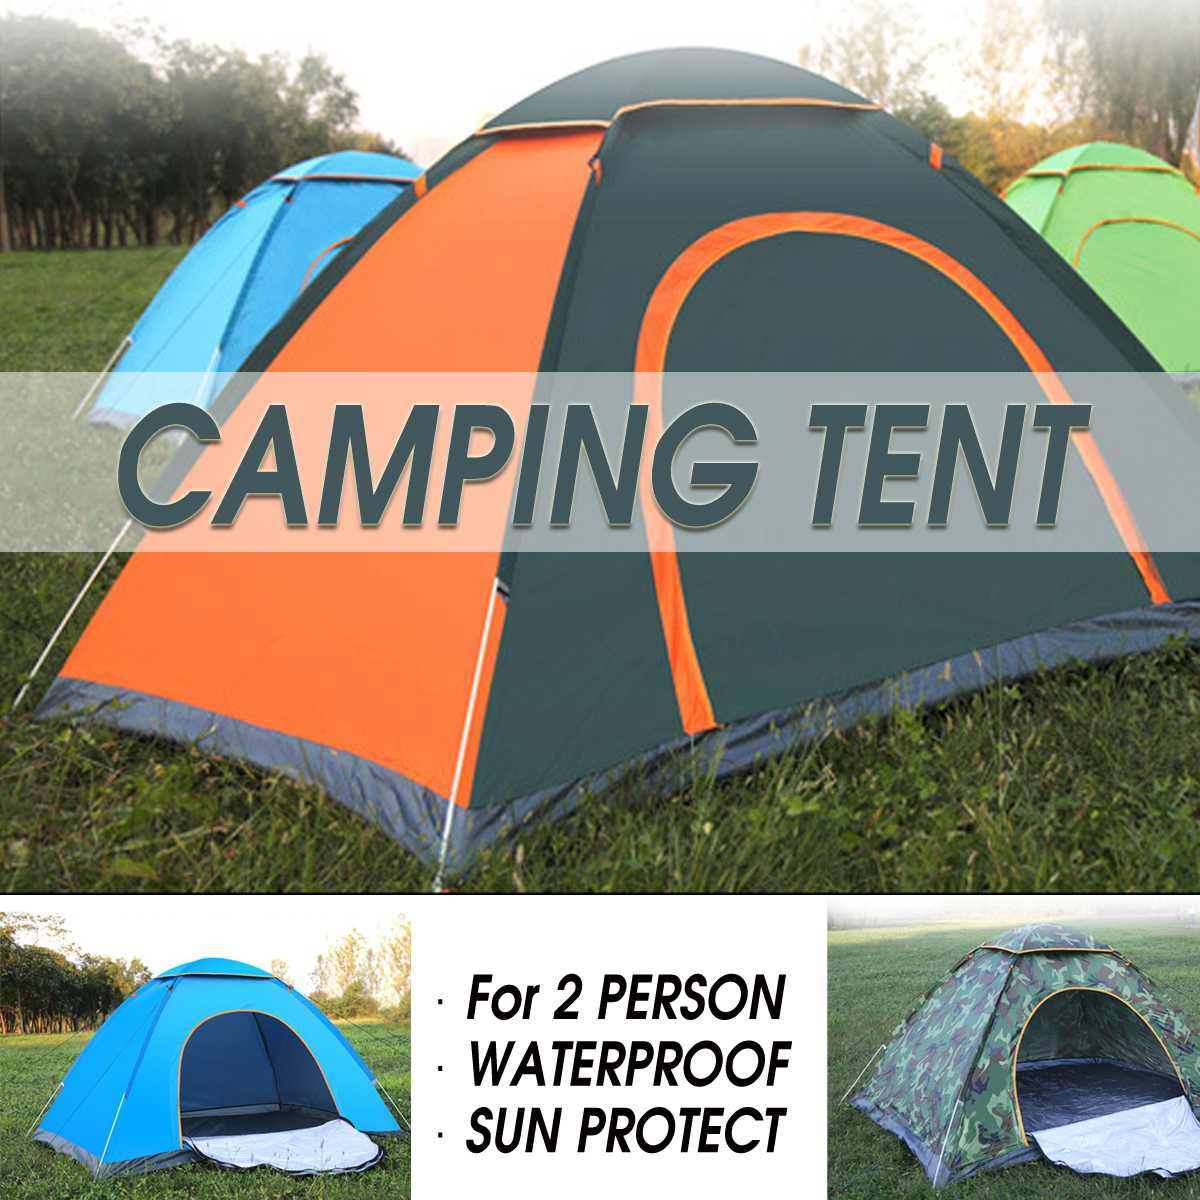 2-3 Person Waterproof Camping Tent Quick Automatic Open Outdoor Portable Shelter Hiking Fishing Travel Anti UV Sun2-3 Person Waterproof Camping Tent Quick Automatic Open Outdoor Portable Shelter Hiking Fishing Travel Anti UV Sun